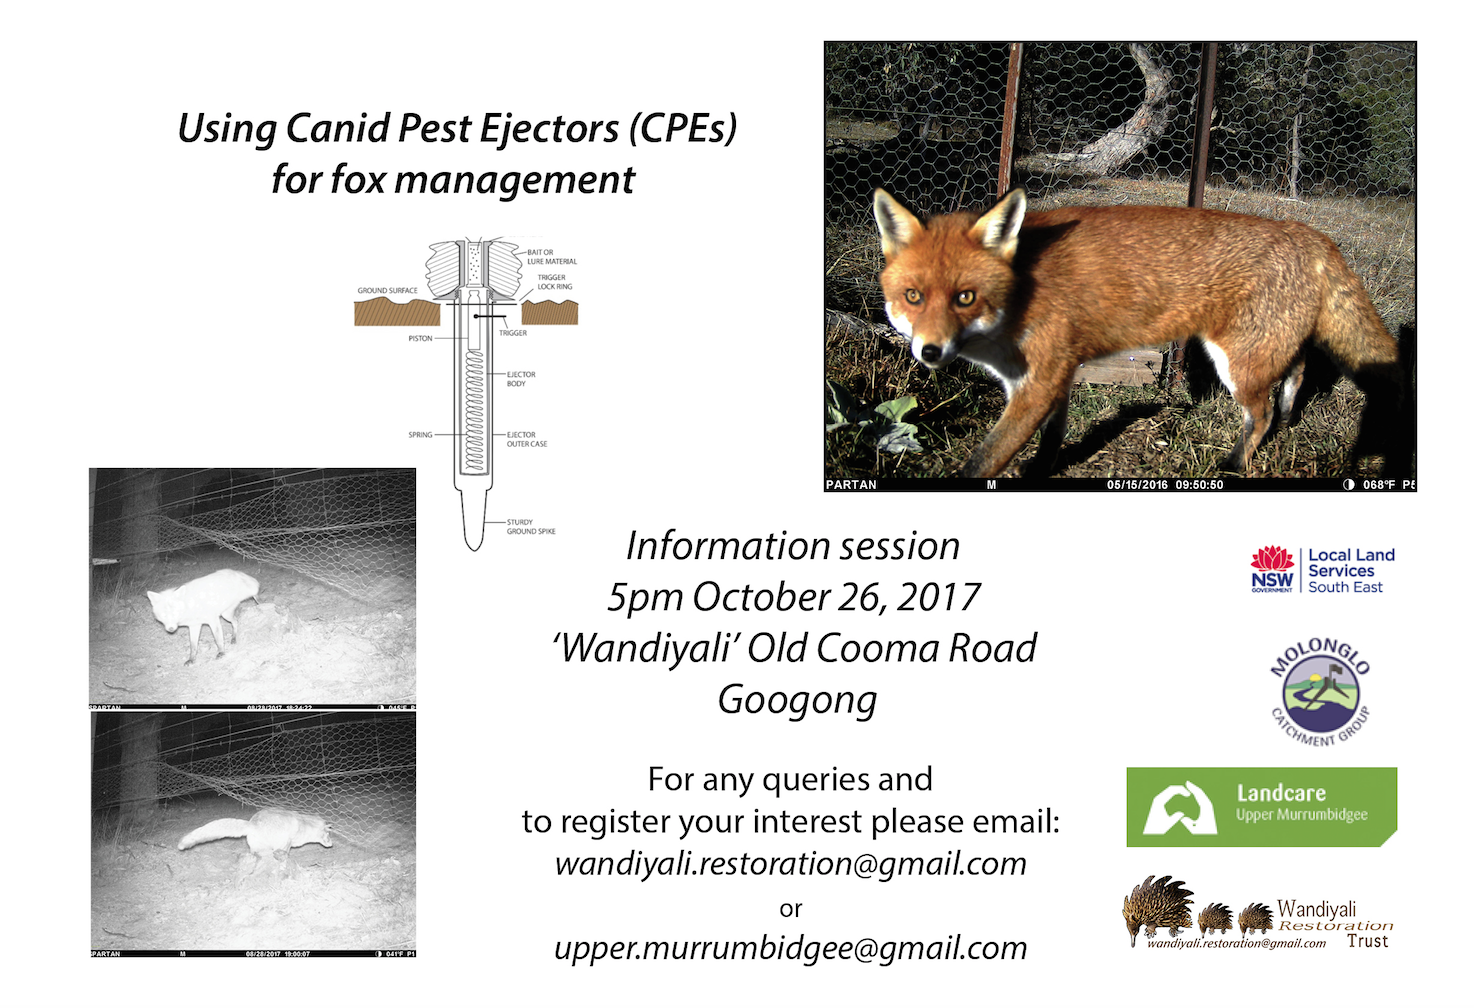 Canid Pest Injector information session